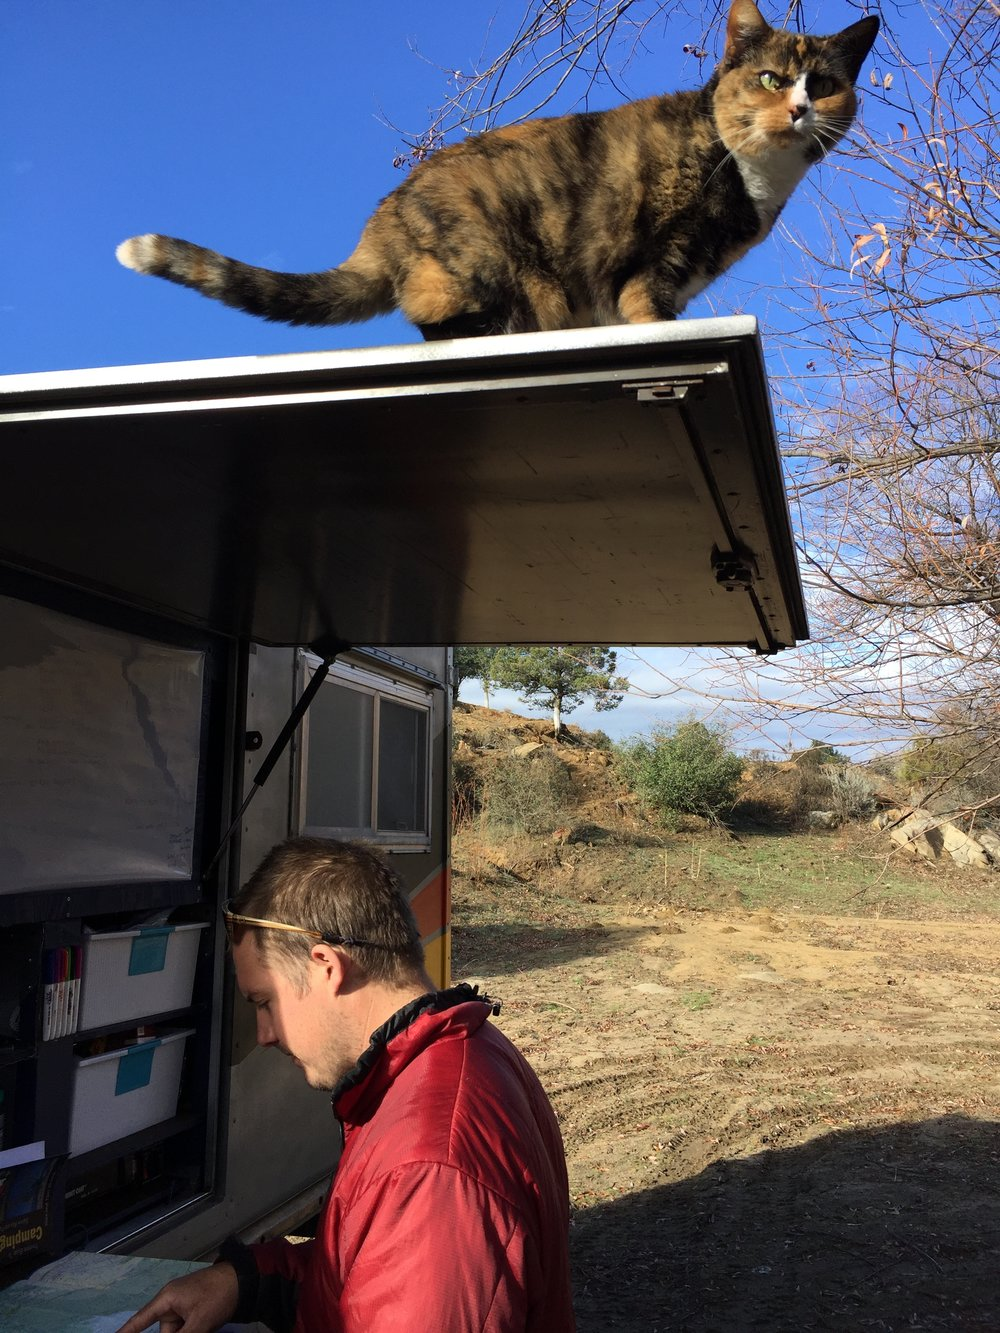 Loulou exploring new heights while we peruse the map for our next destination.